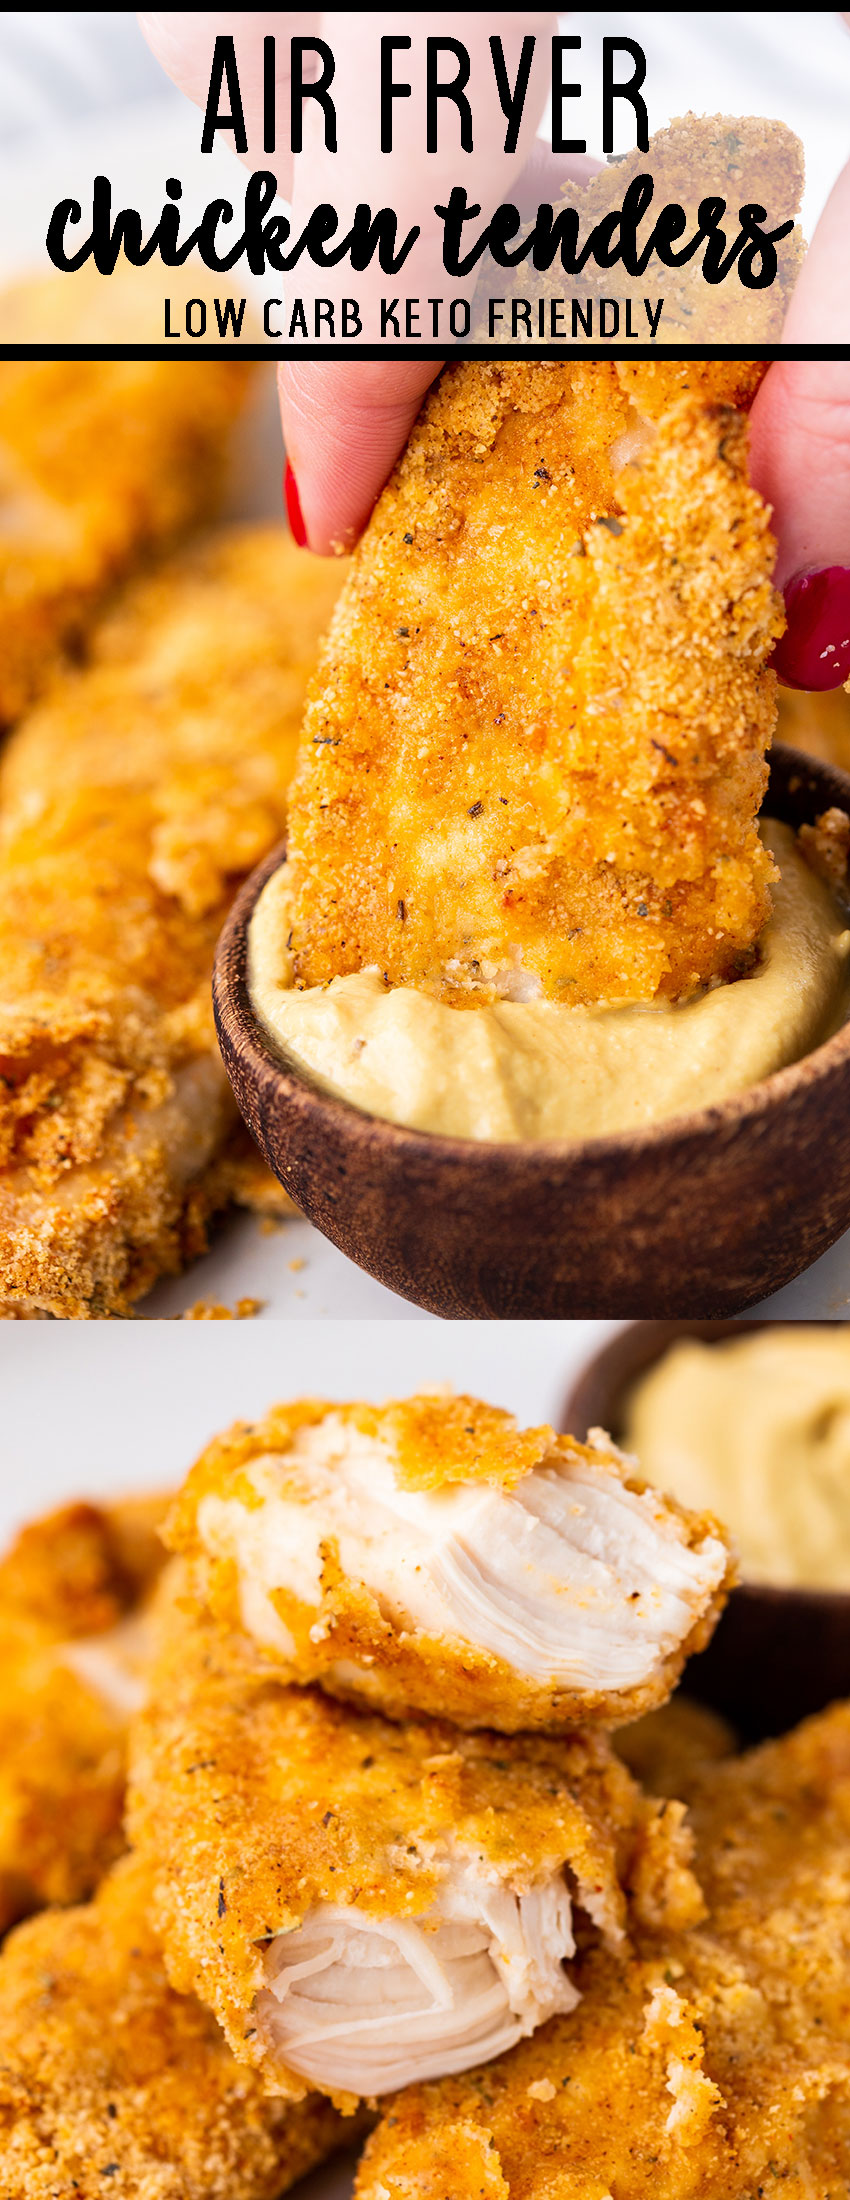 Air fryer chicken tenders are low carb and totally delicious